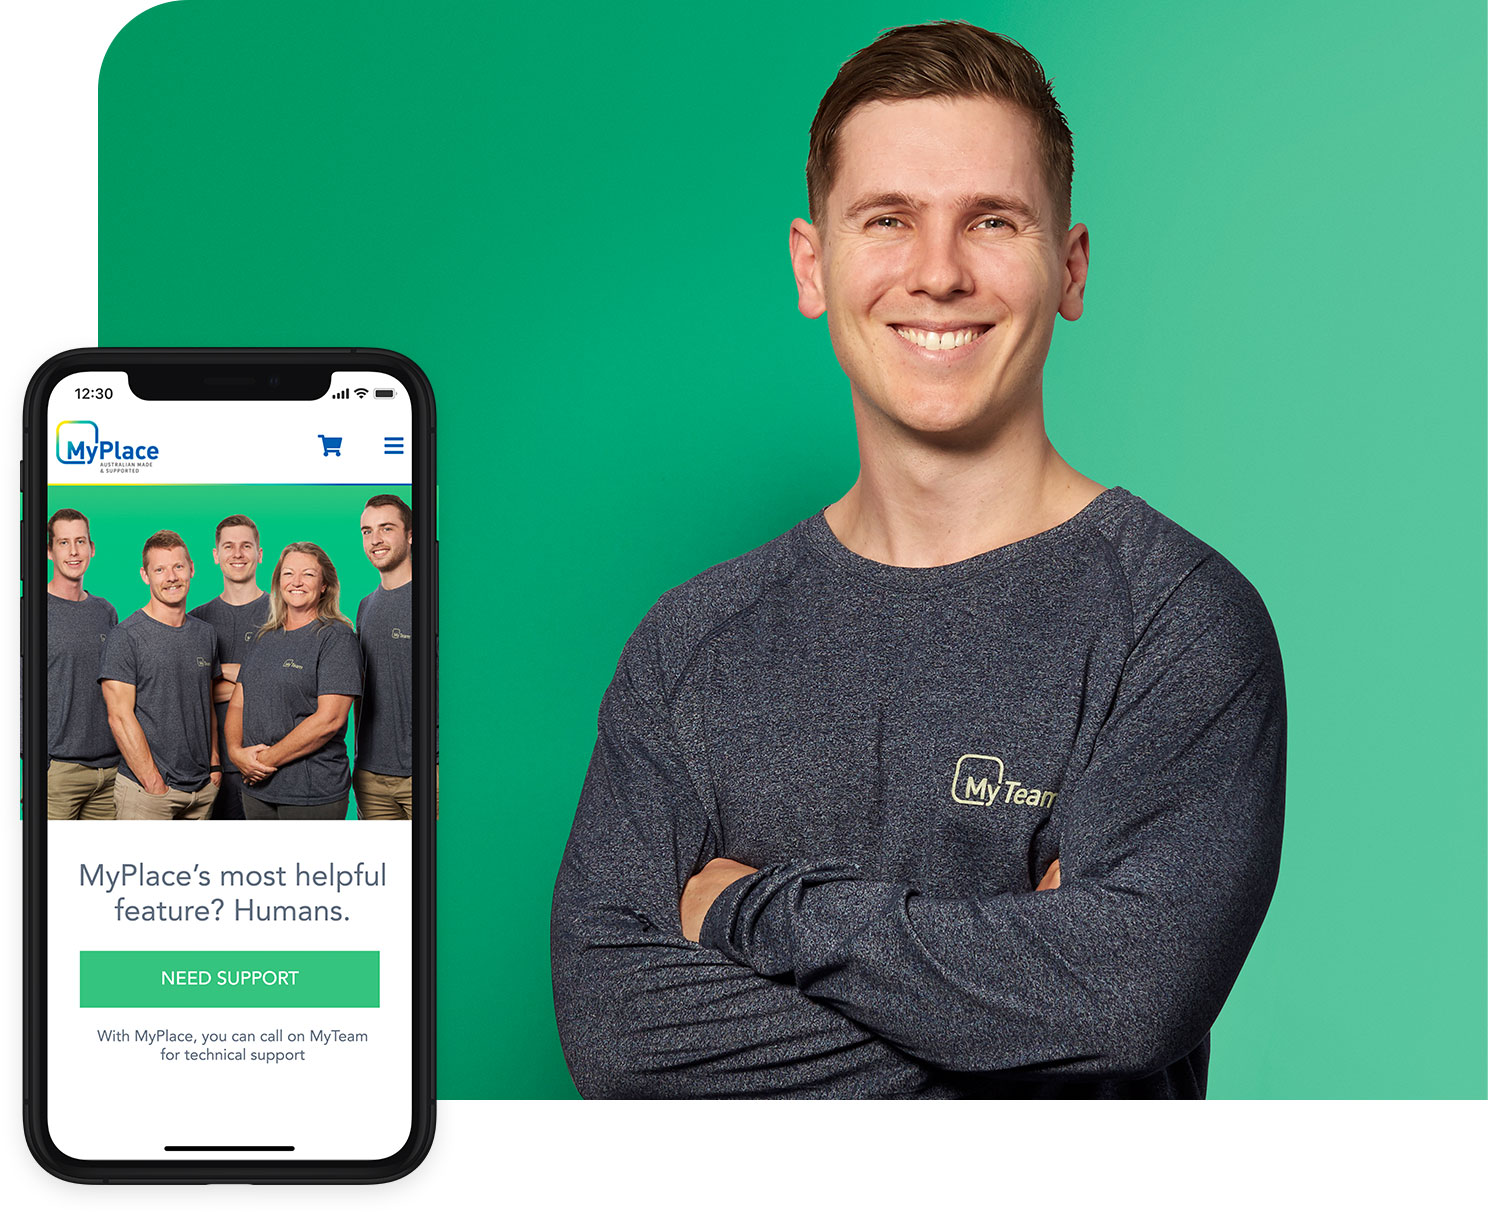 The MyPlace app and The MyAir team